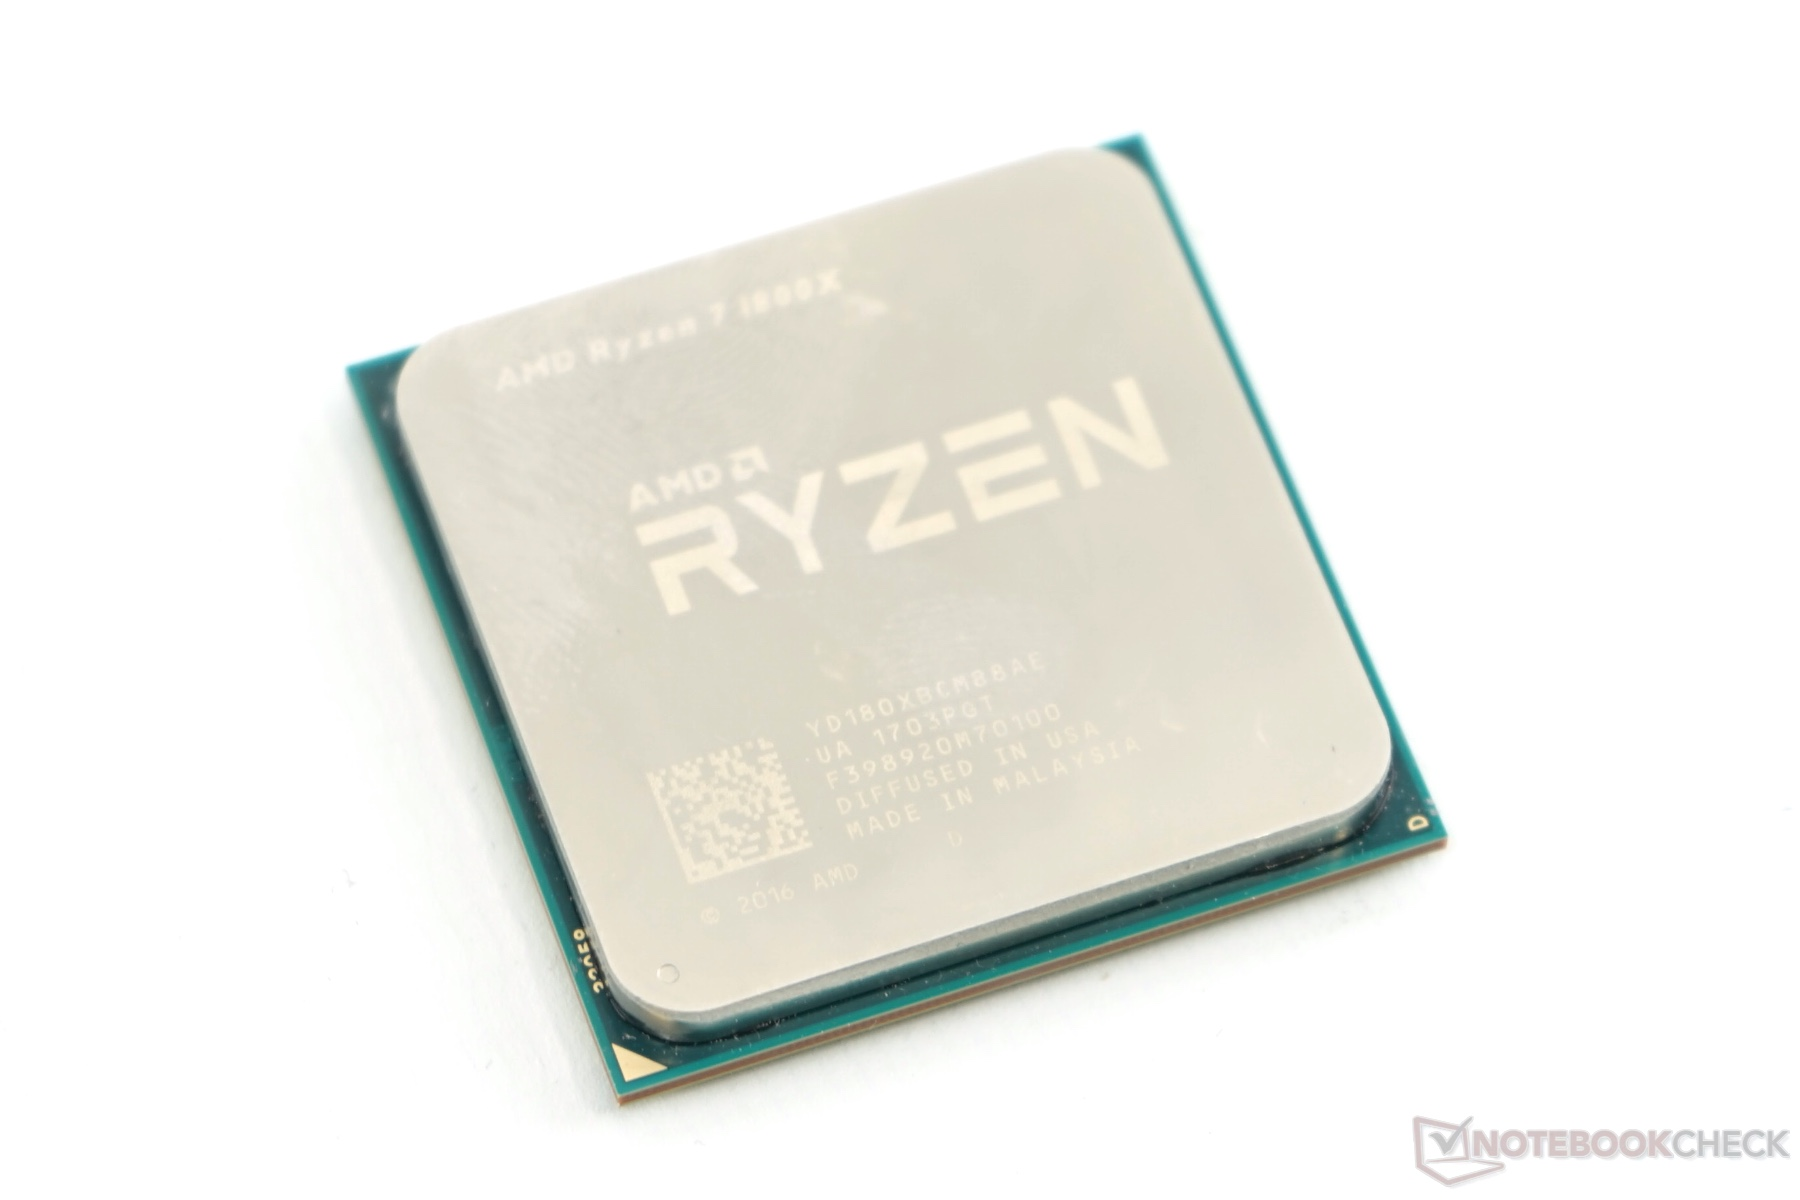 AMD Ryzen 7 1700 SoC